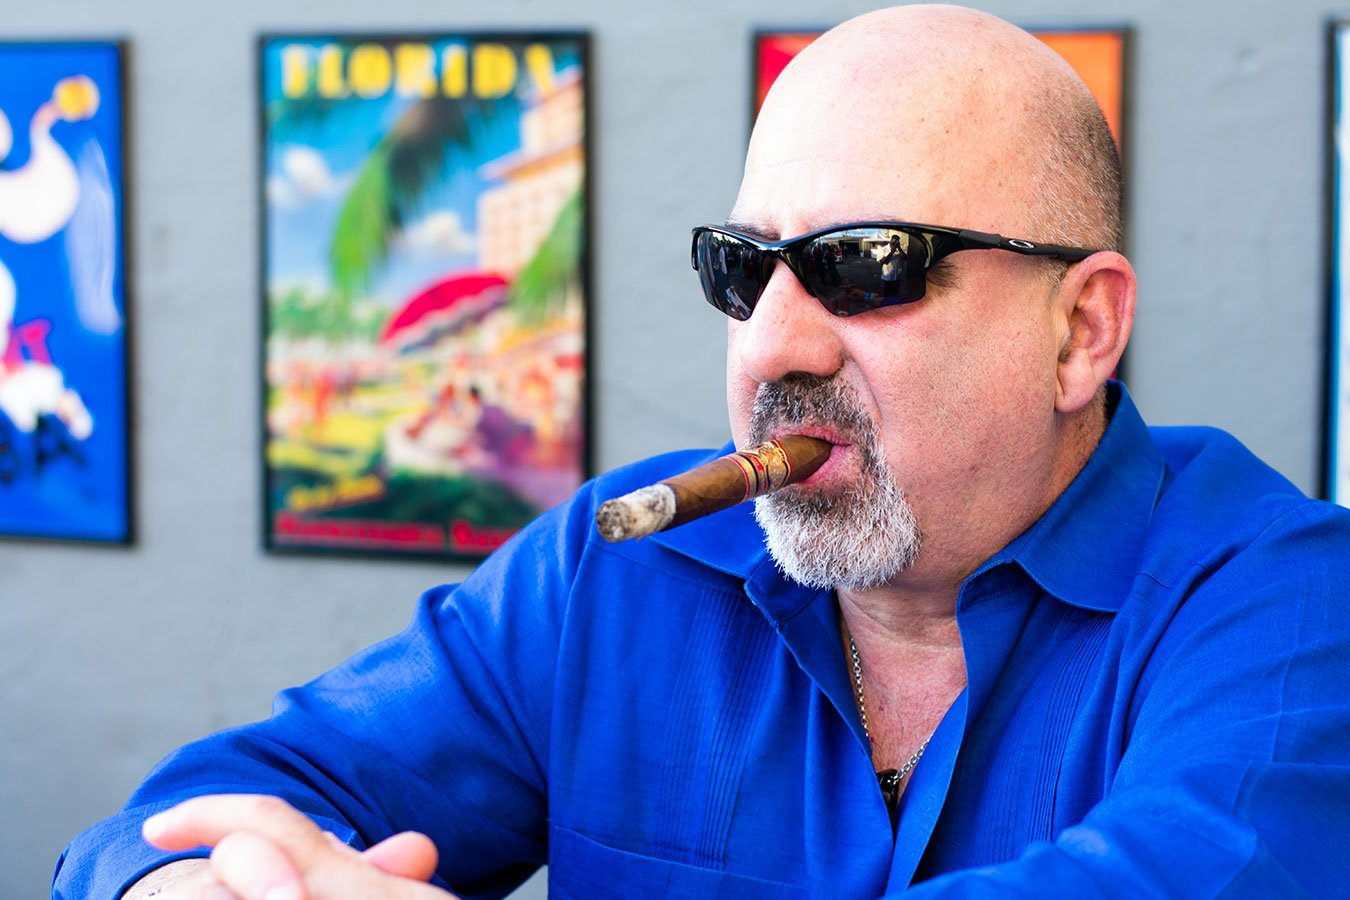 Guests savored hand-rolled Cuban cigars at the Southwest #Heartoftravel event in the FATVillage Arts District